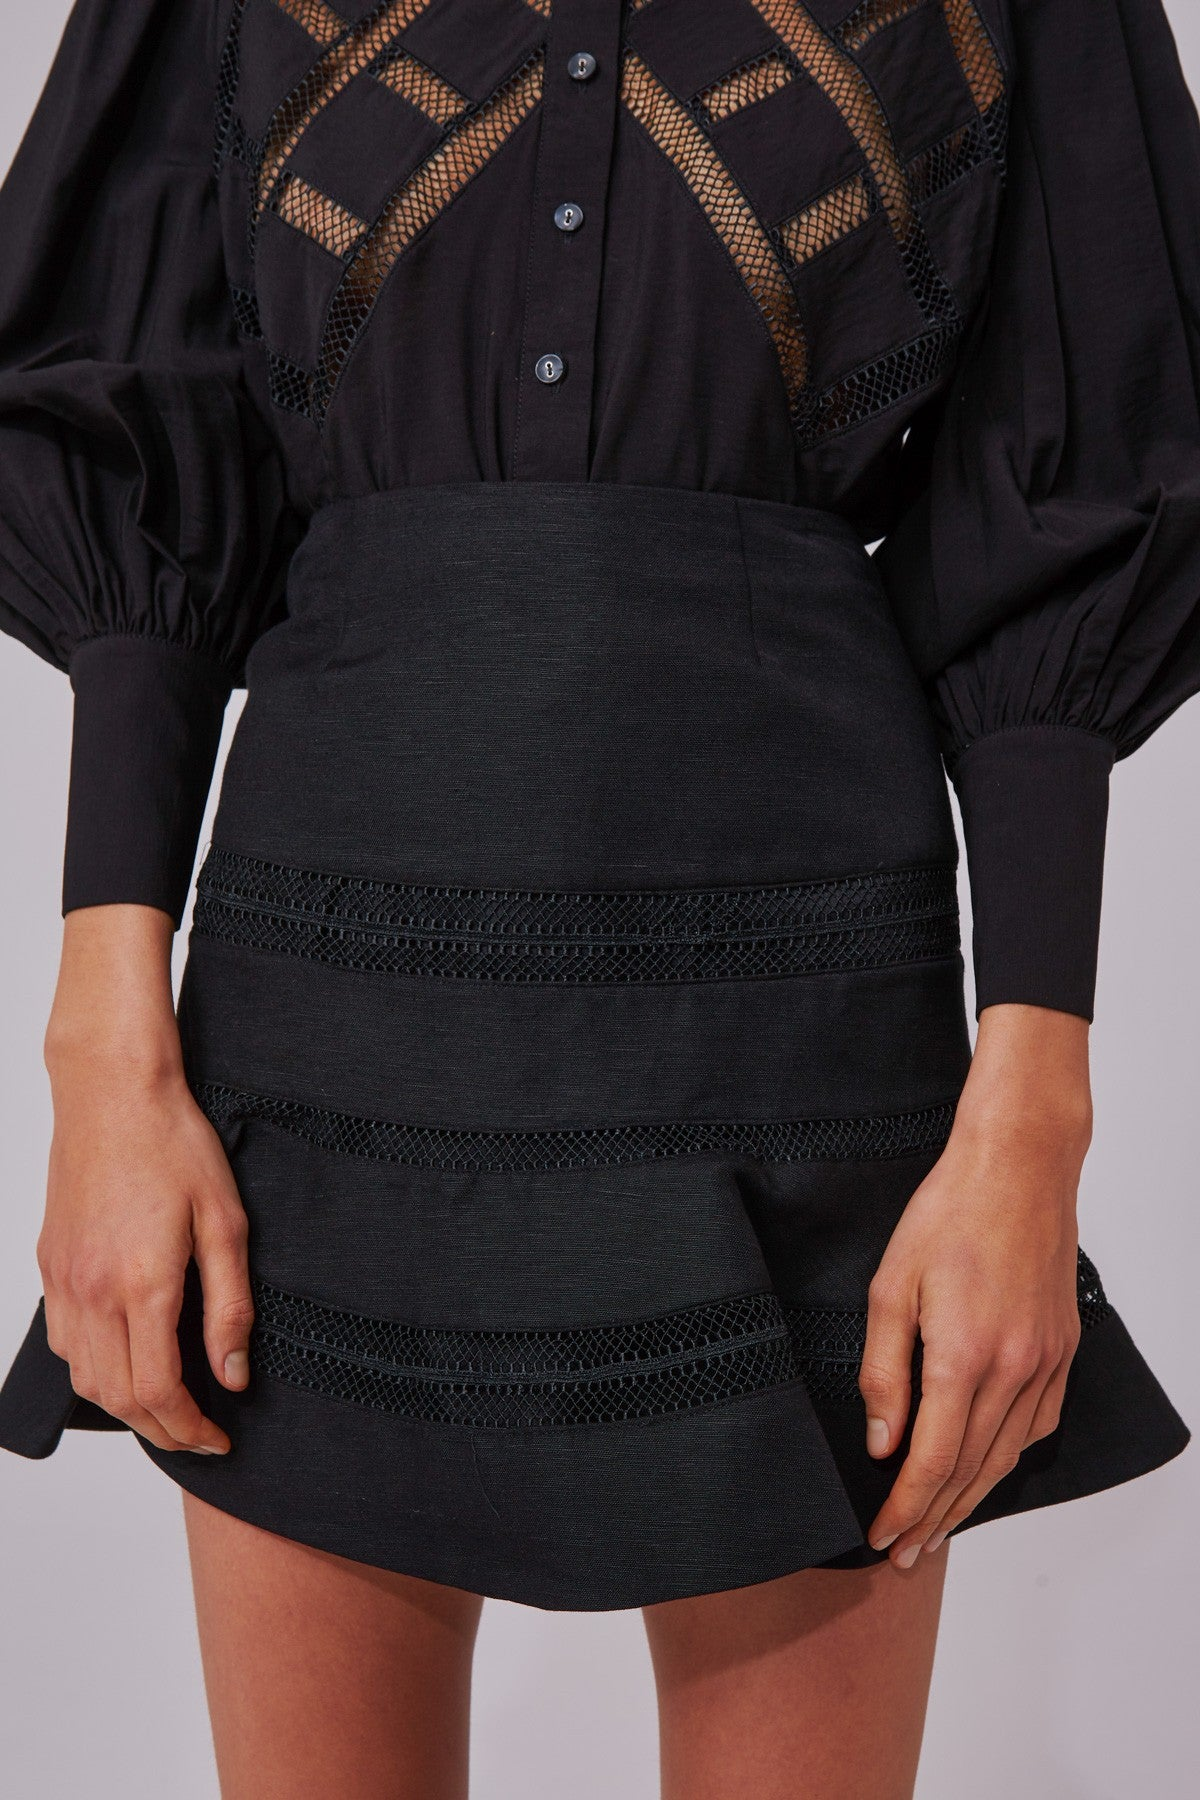 WORTHY SKIRT black